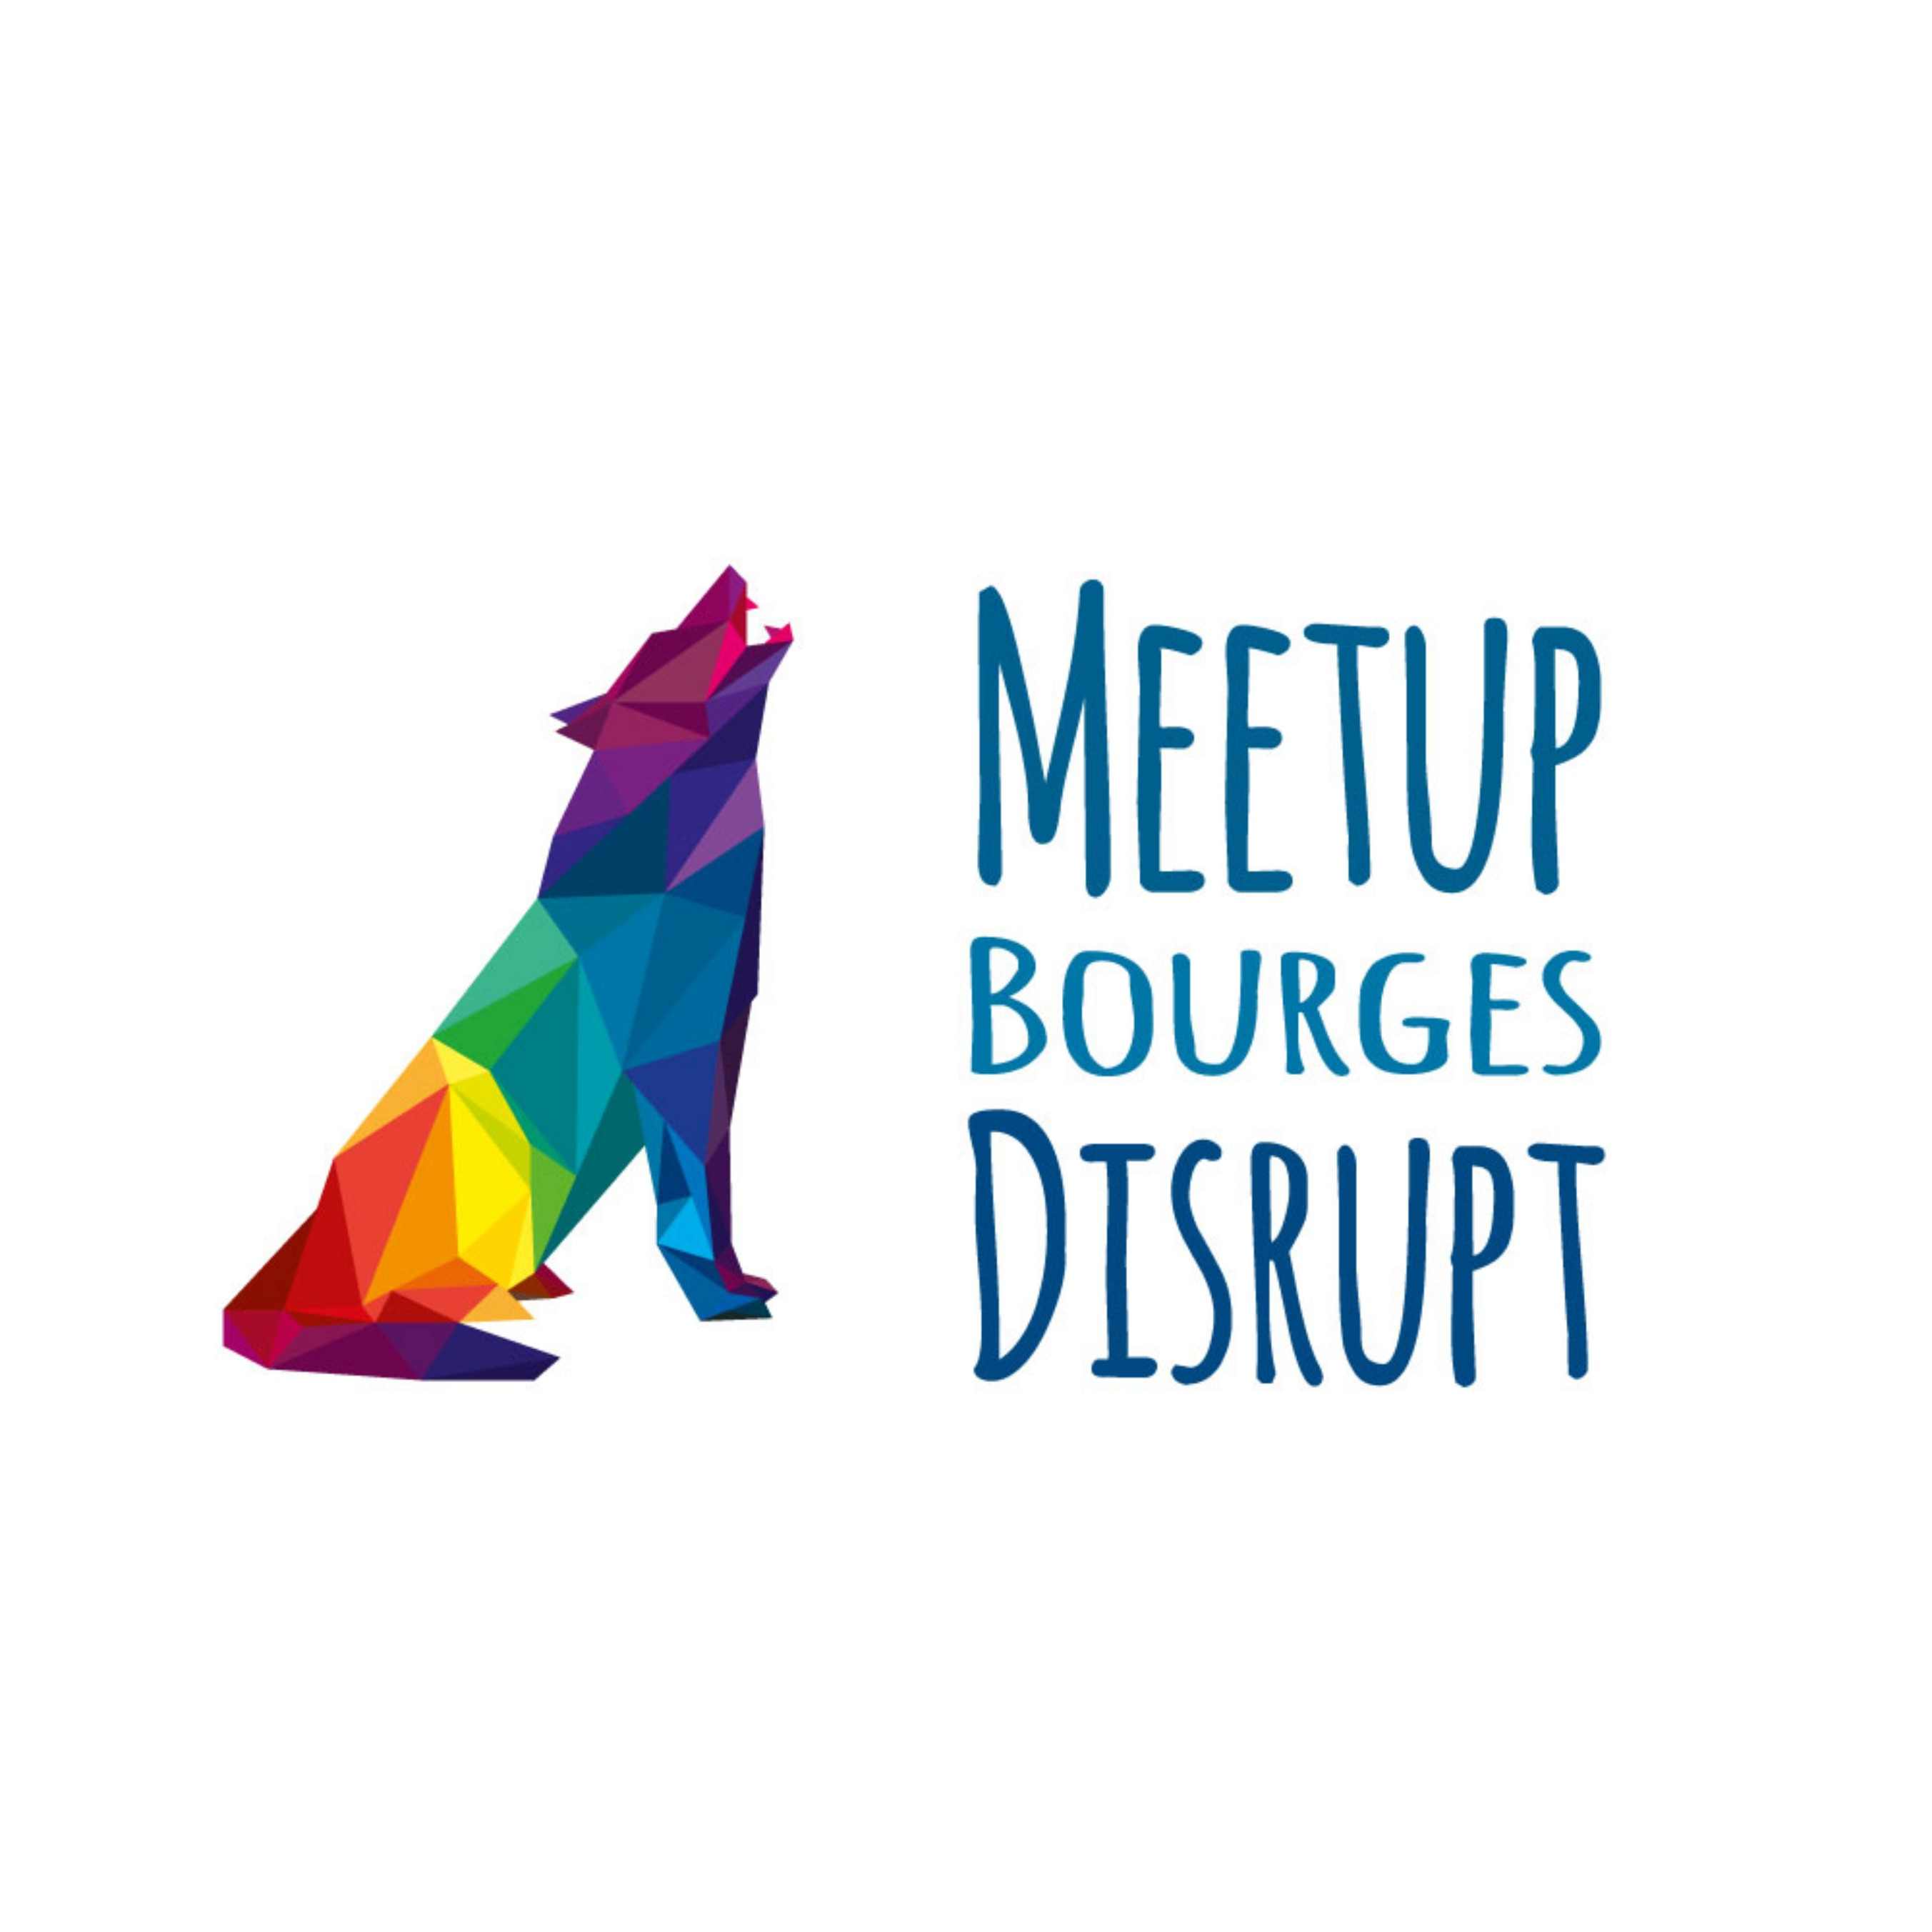 Meetup Bourges Disrupt